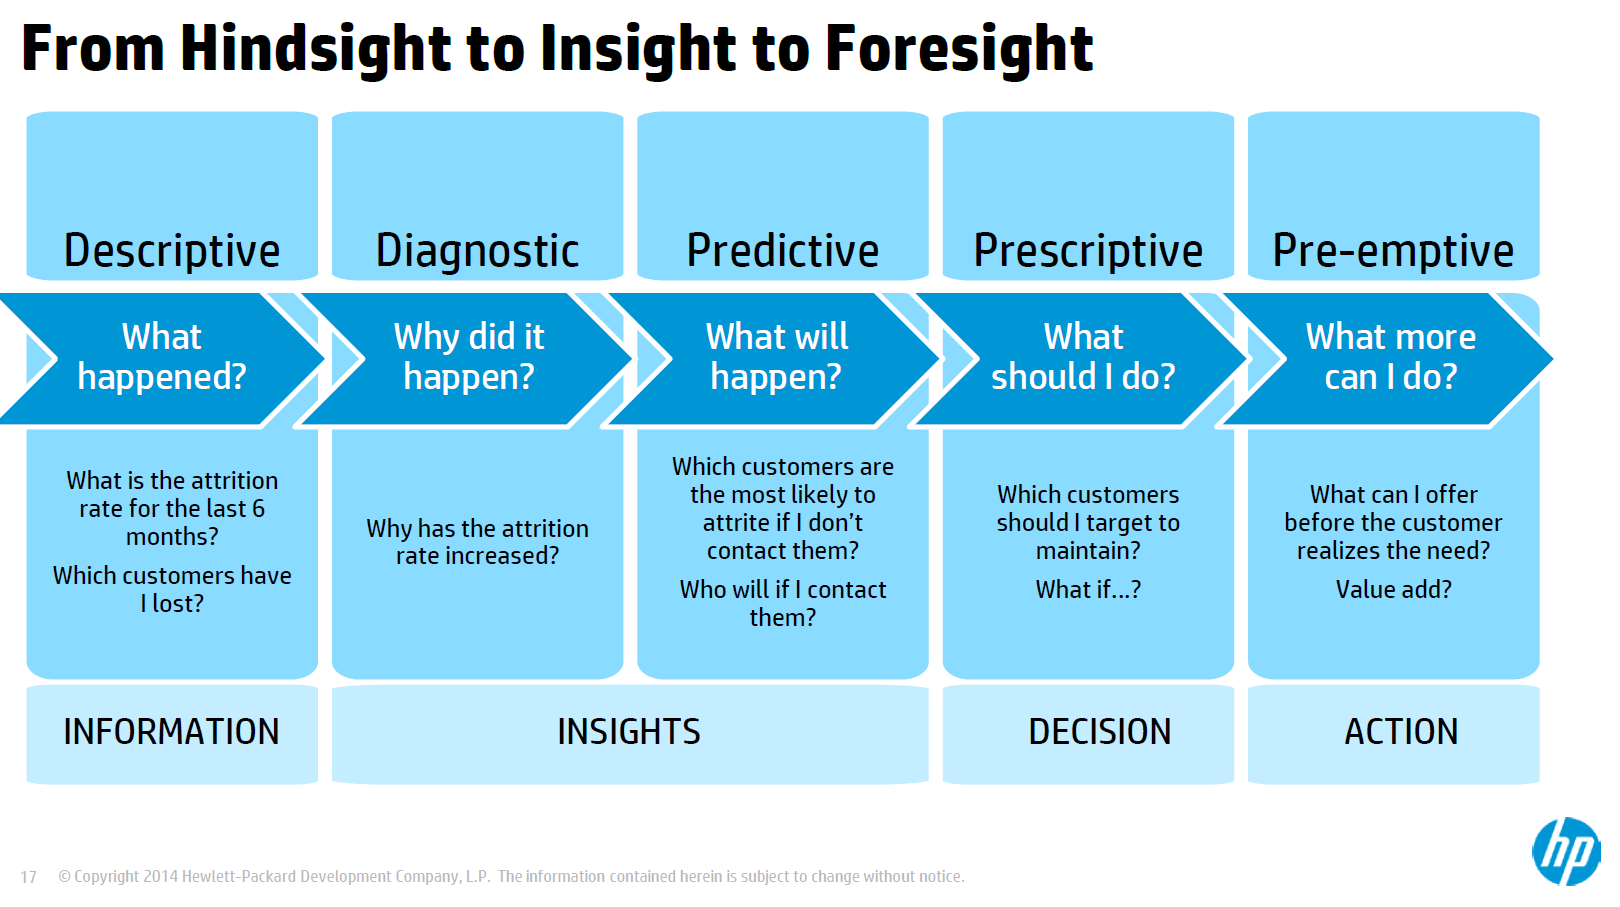 #BBBT nice flow from hindsight to insight to foresight from @HPVertica http://t.co/22AcyklHdx